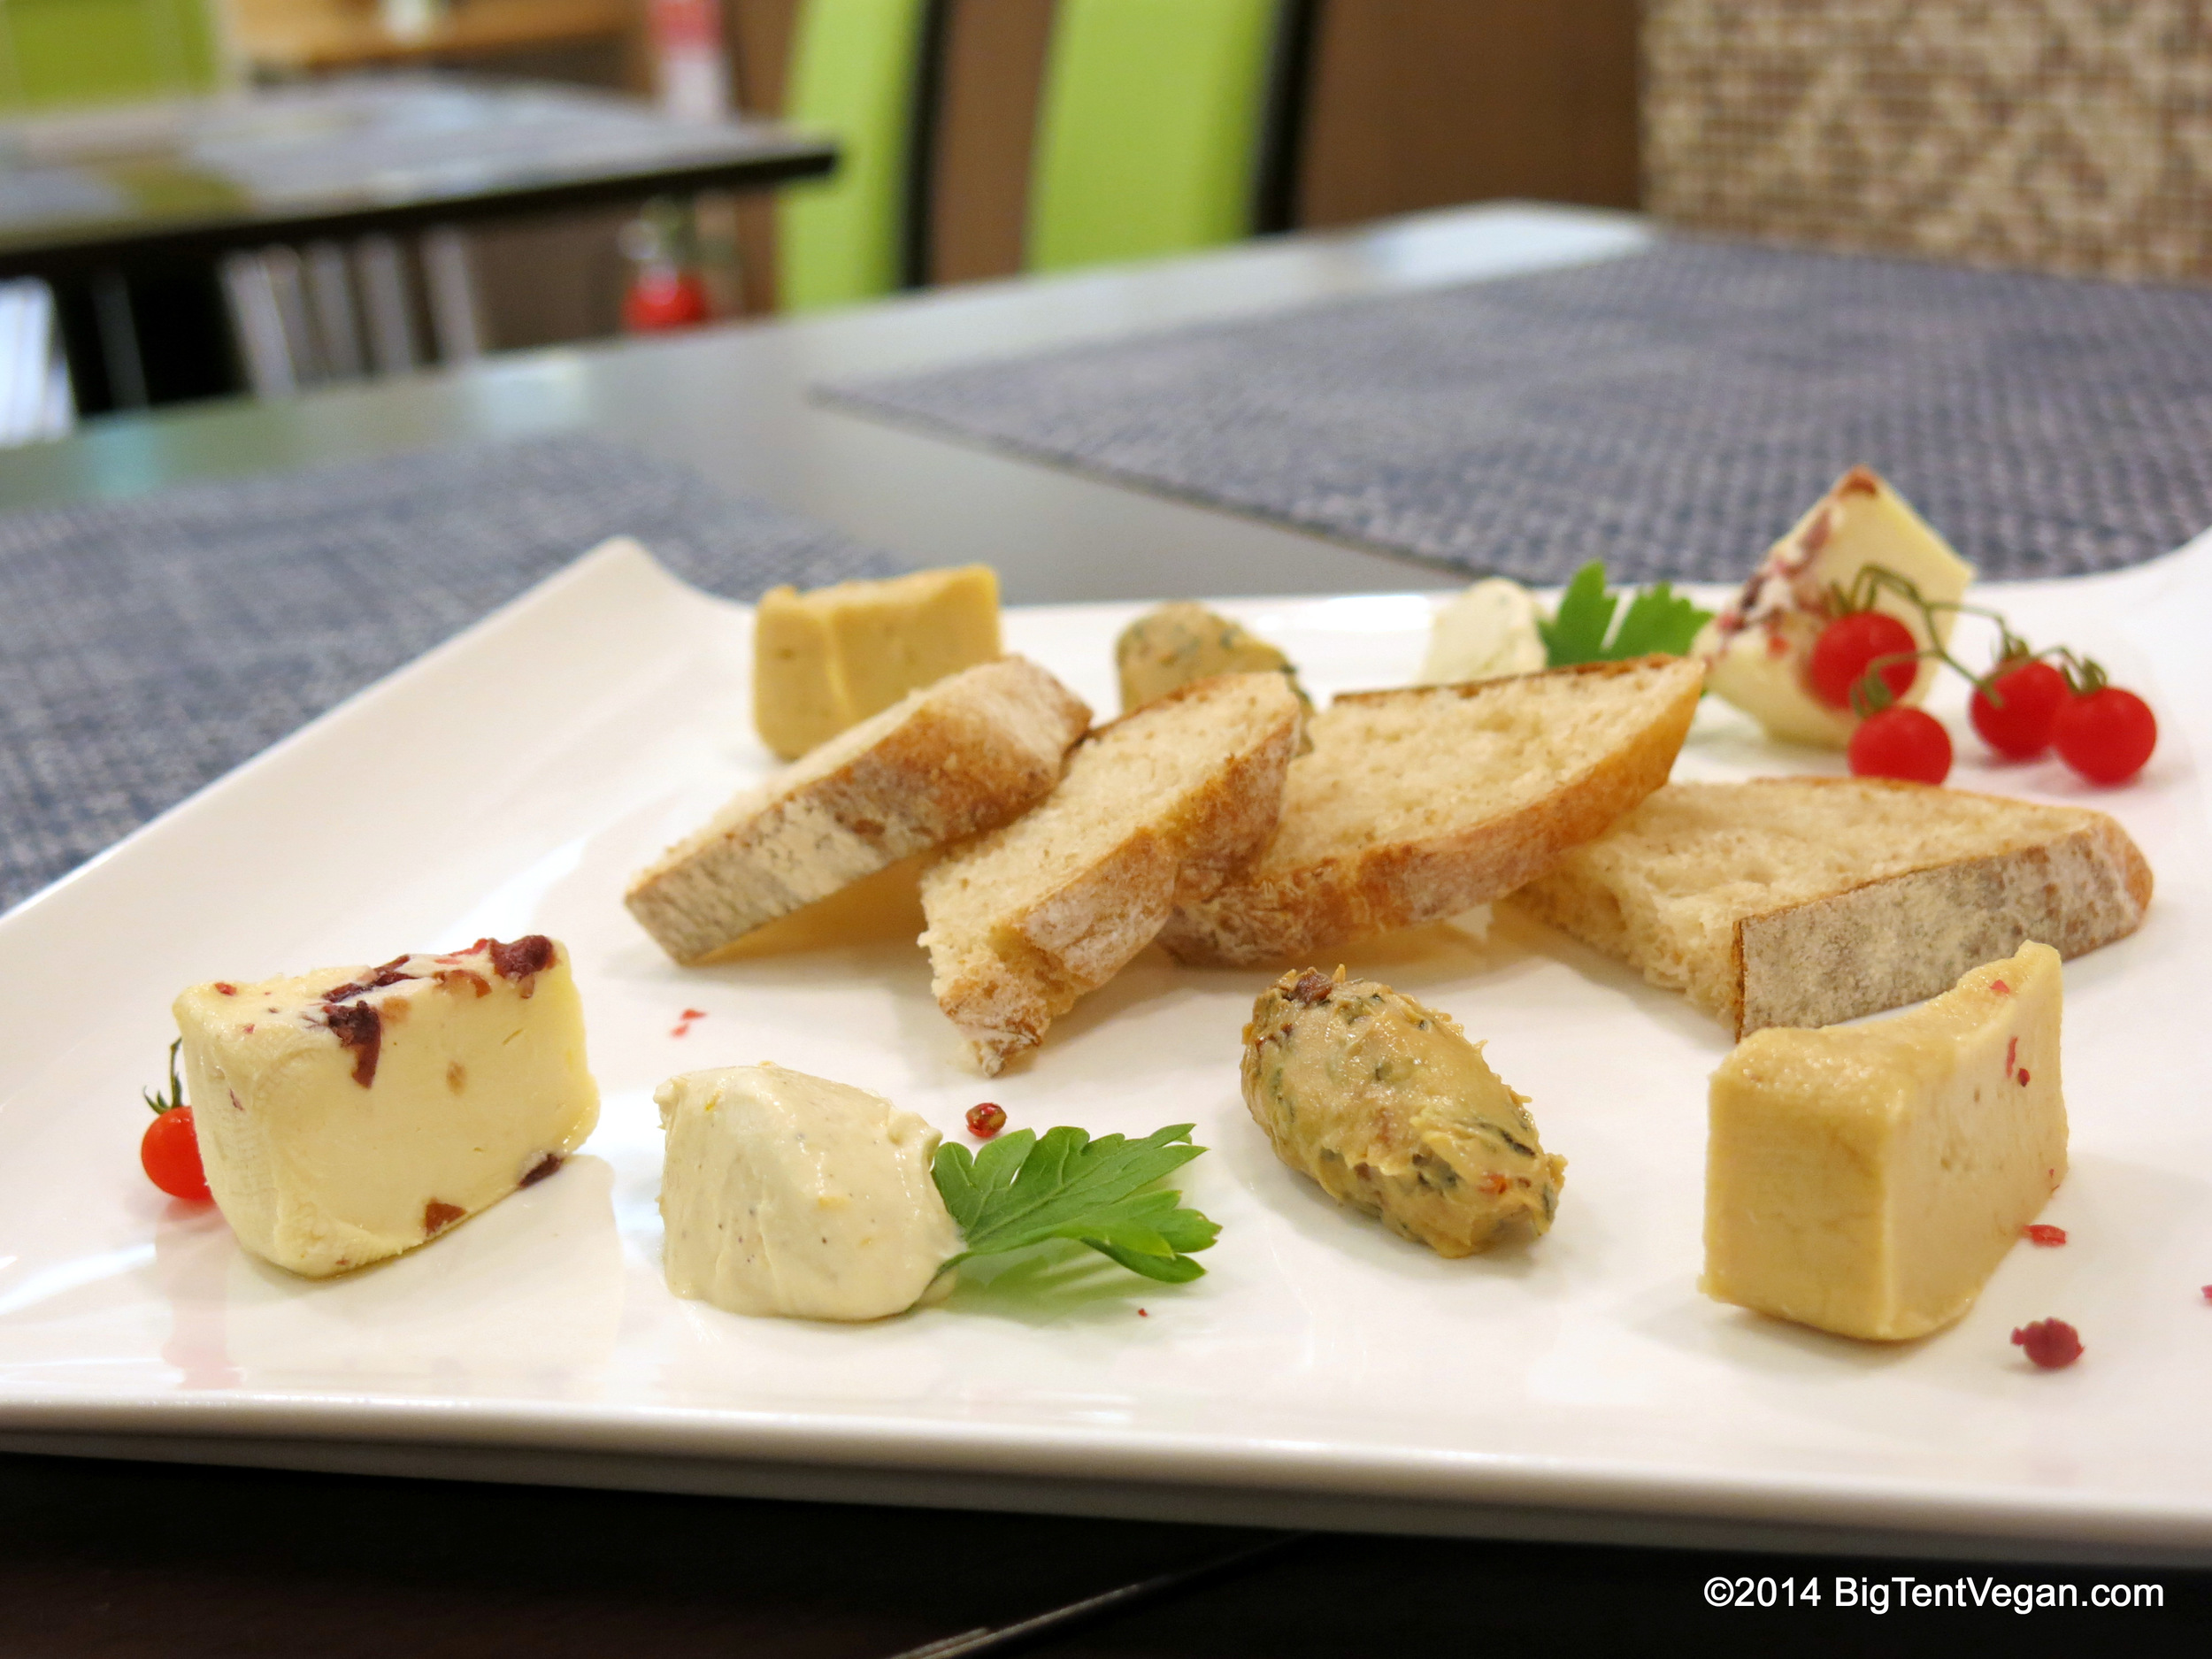 Vegan Cheese Plate (Four Flavors) from 100% vegan Choice Café and Restaurant in Kyoto, Japan